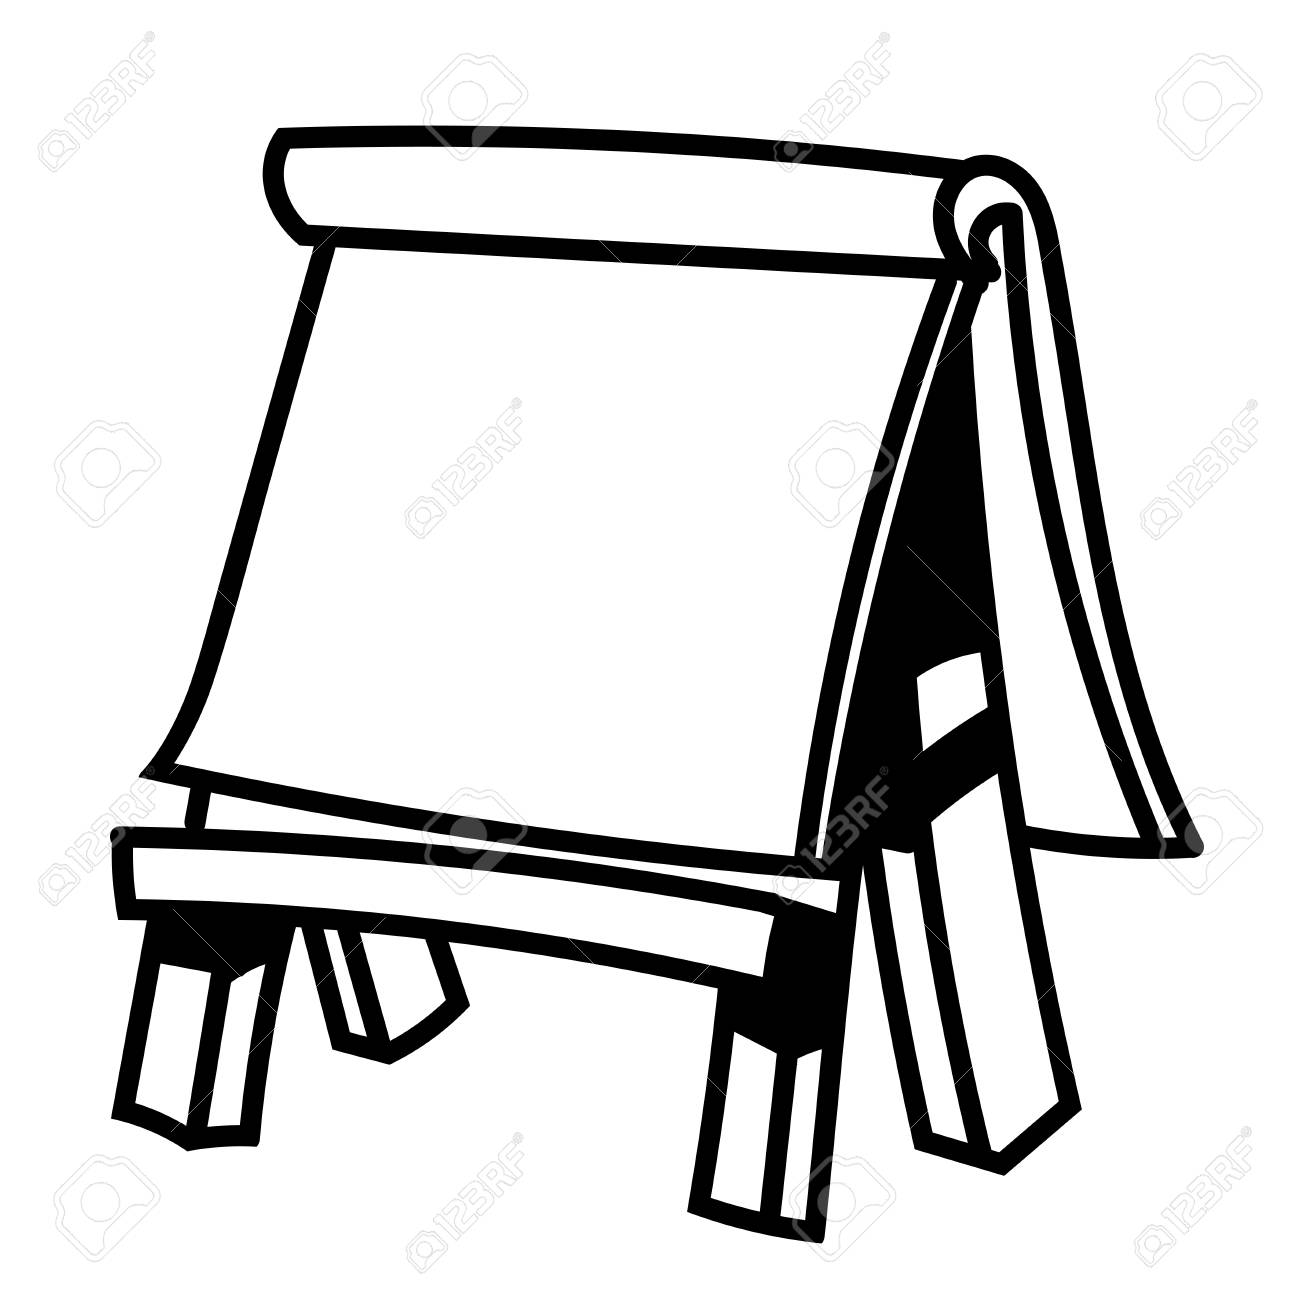 1300x1300 Hand Drawn Sketch Of Paper Board On Wooden Easel, Black And White